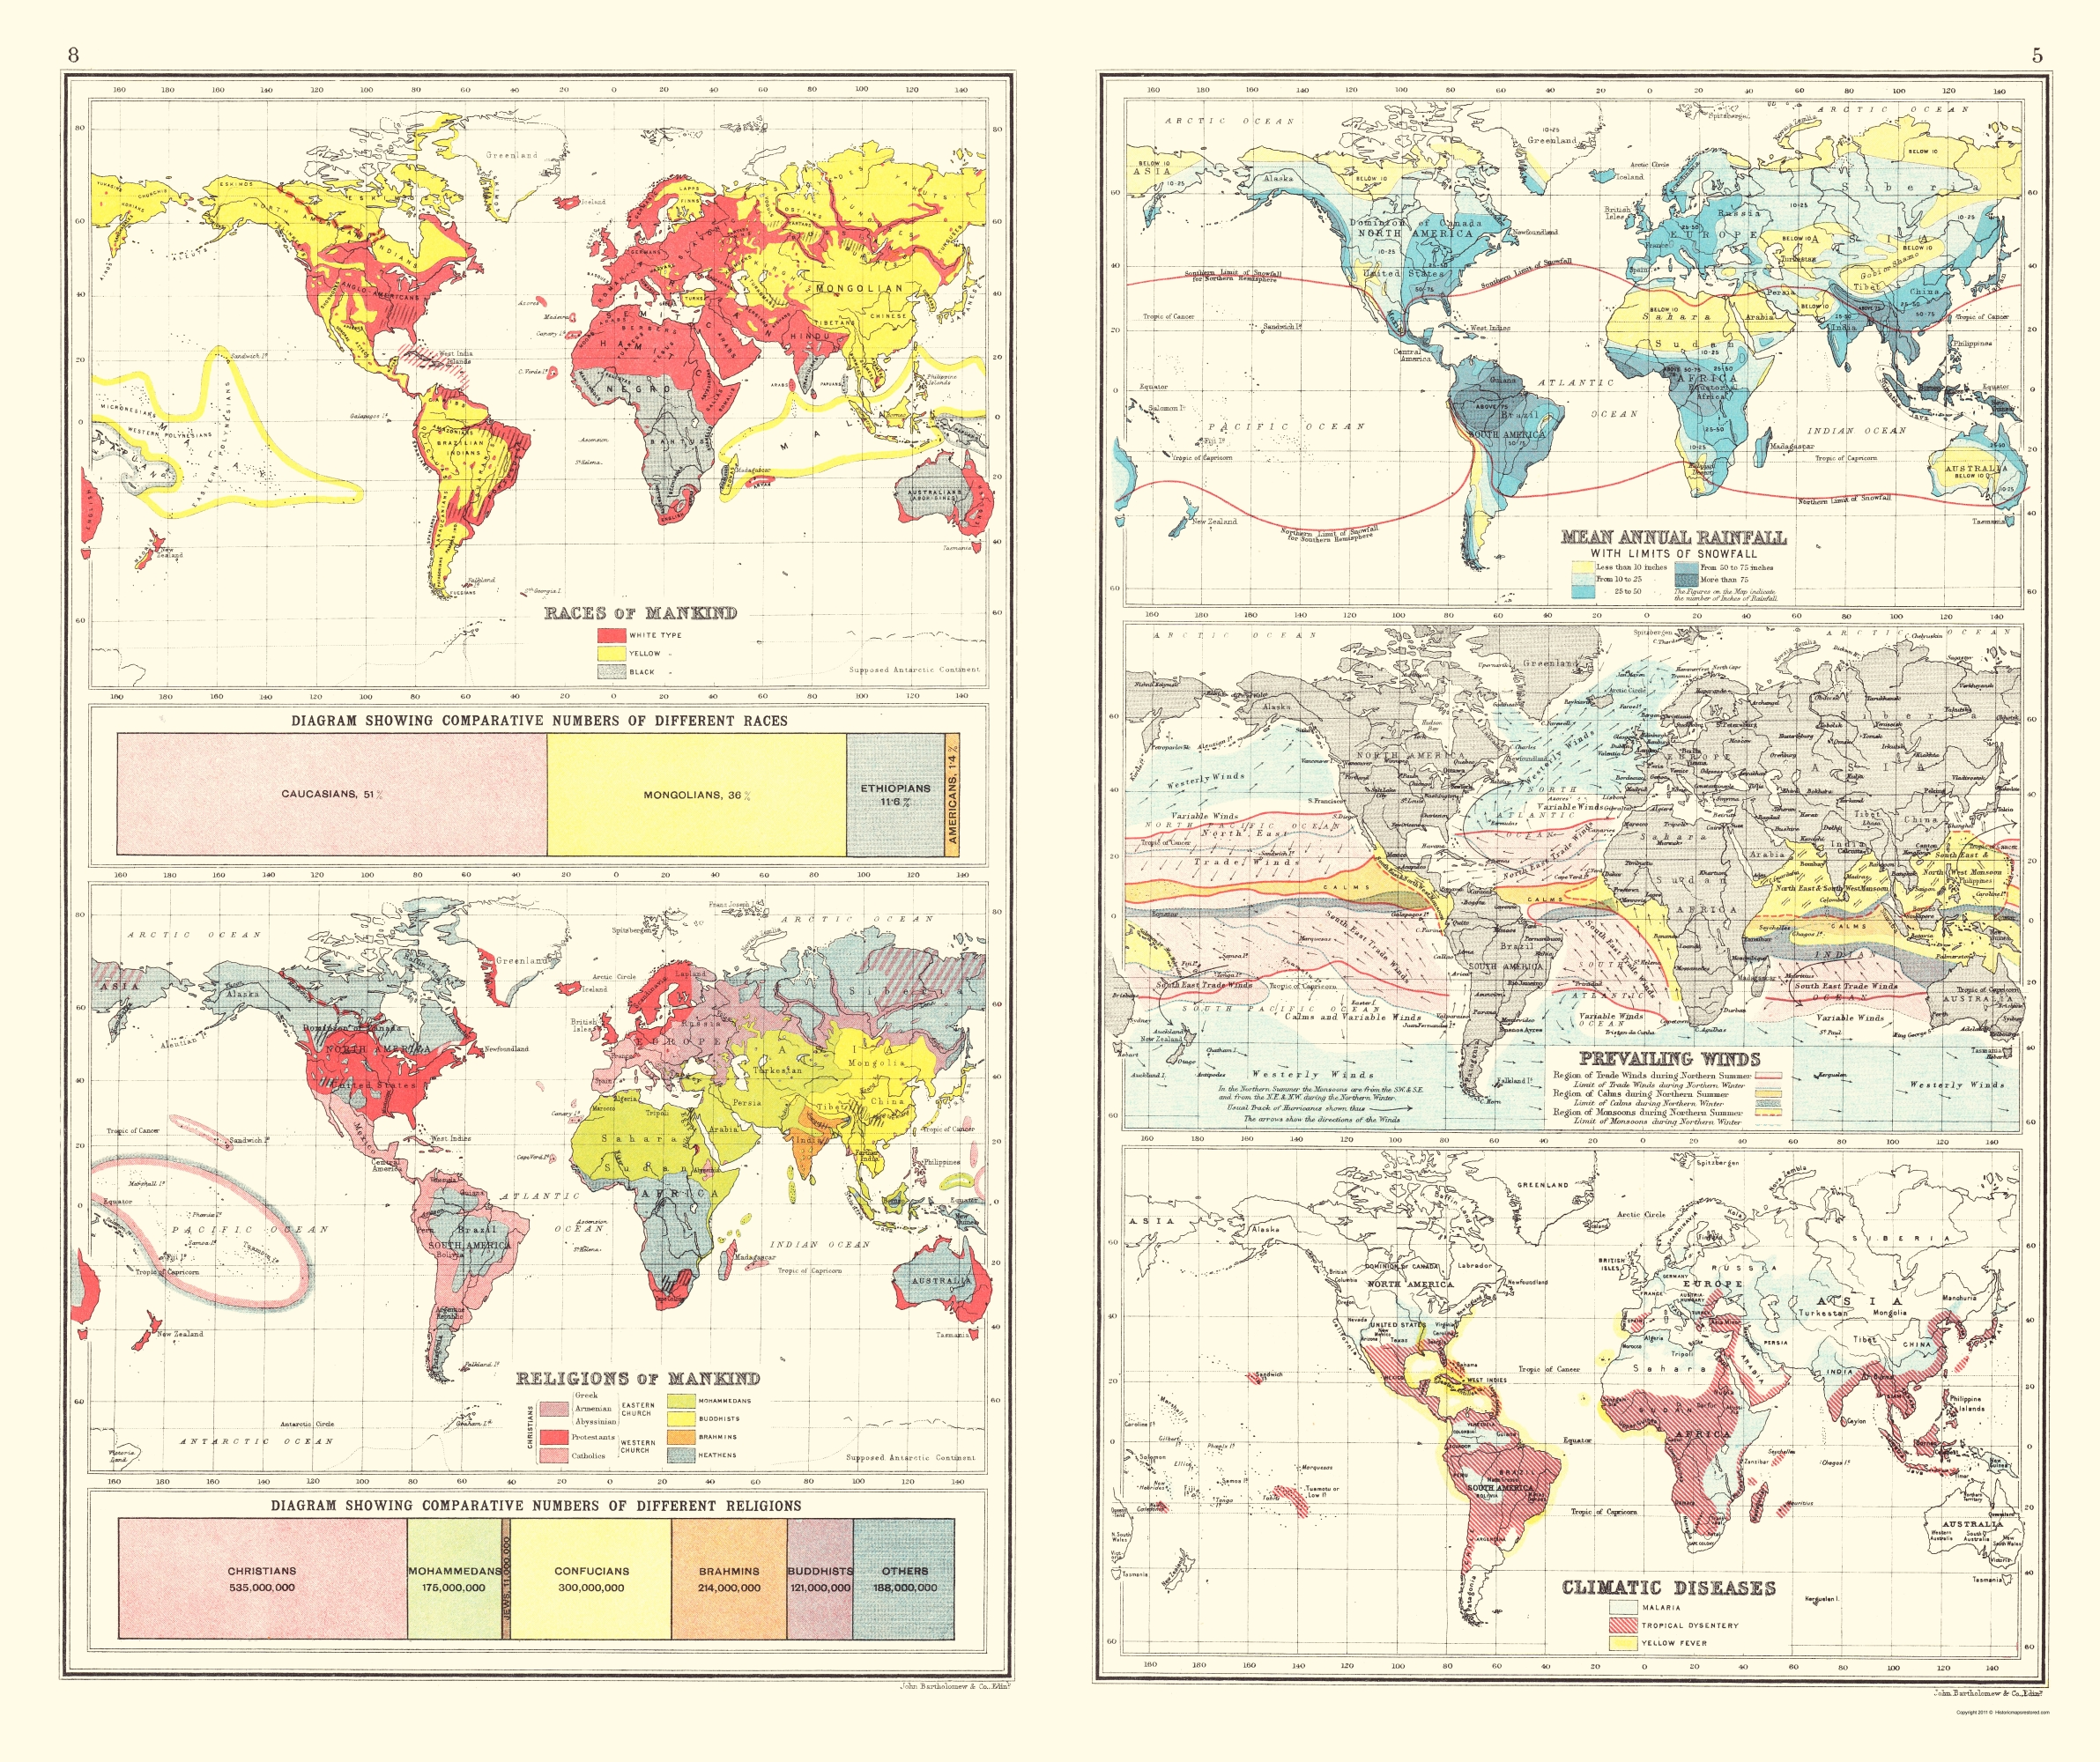 Old World Map - Global Race, Religion, Rainfall, Winds, Disease 1907 ...